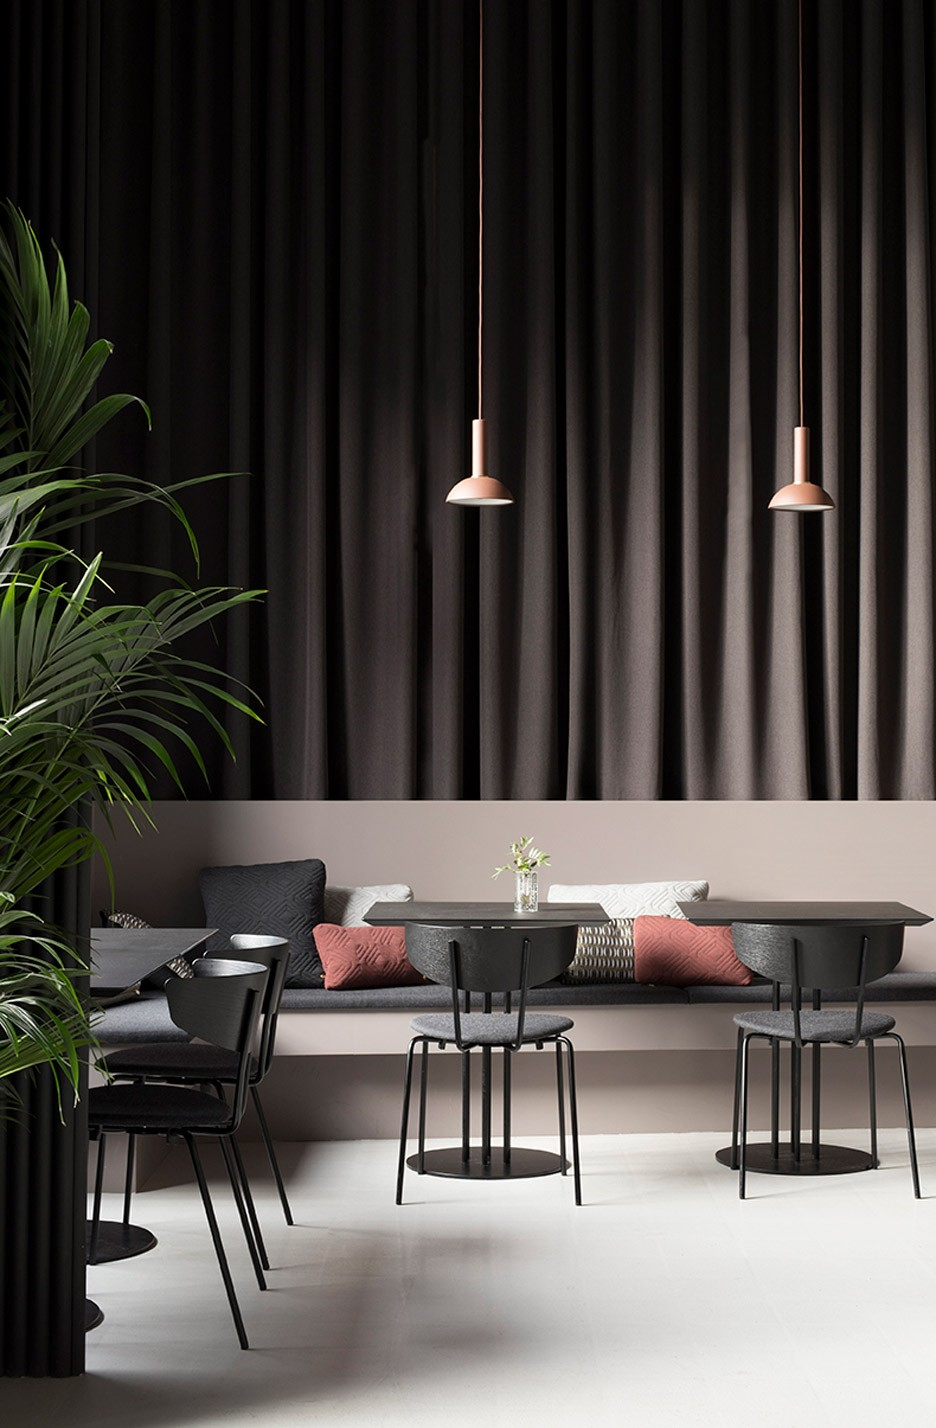 Meet This Mesmerizing Copenhagen Restaurant With Asian And Nordic Inspirations | The Danish homeware brand knownas Ferm Livingwas the head thinker of this marvelous restaurant design. #interiordesign #restaurantdesign #restaurantdecor #interiordecor #designproject